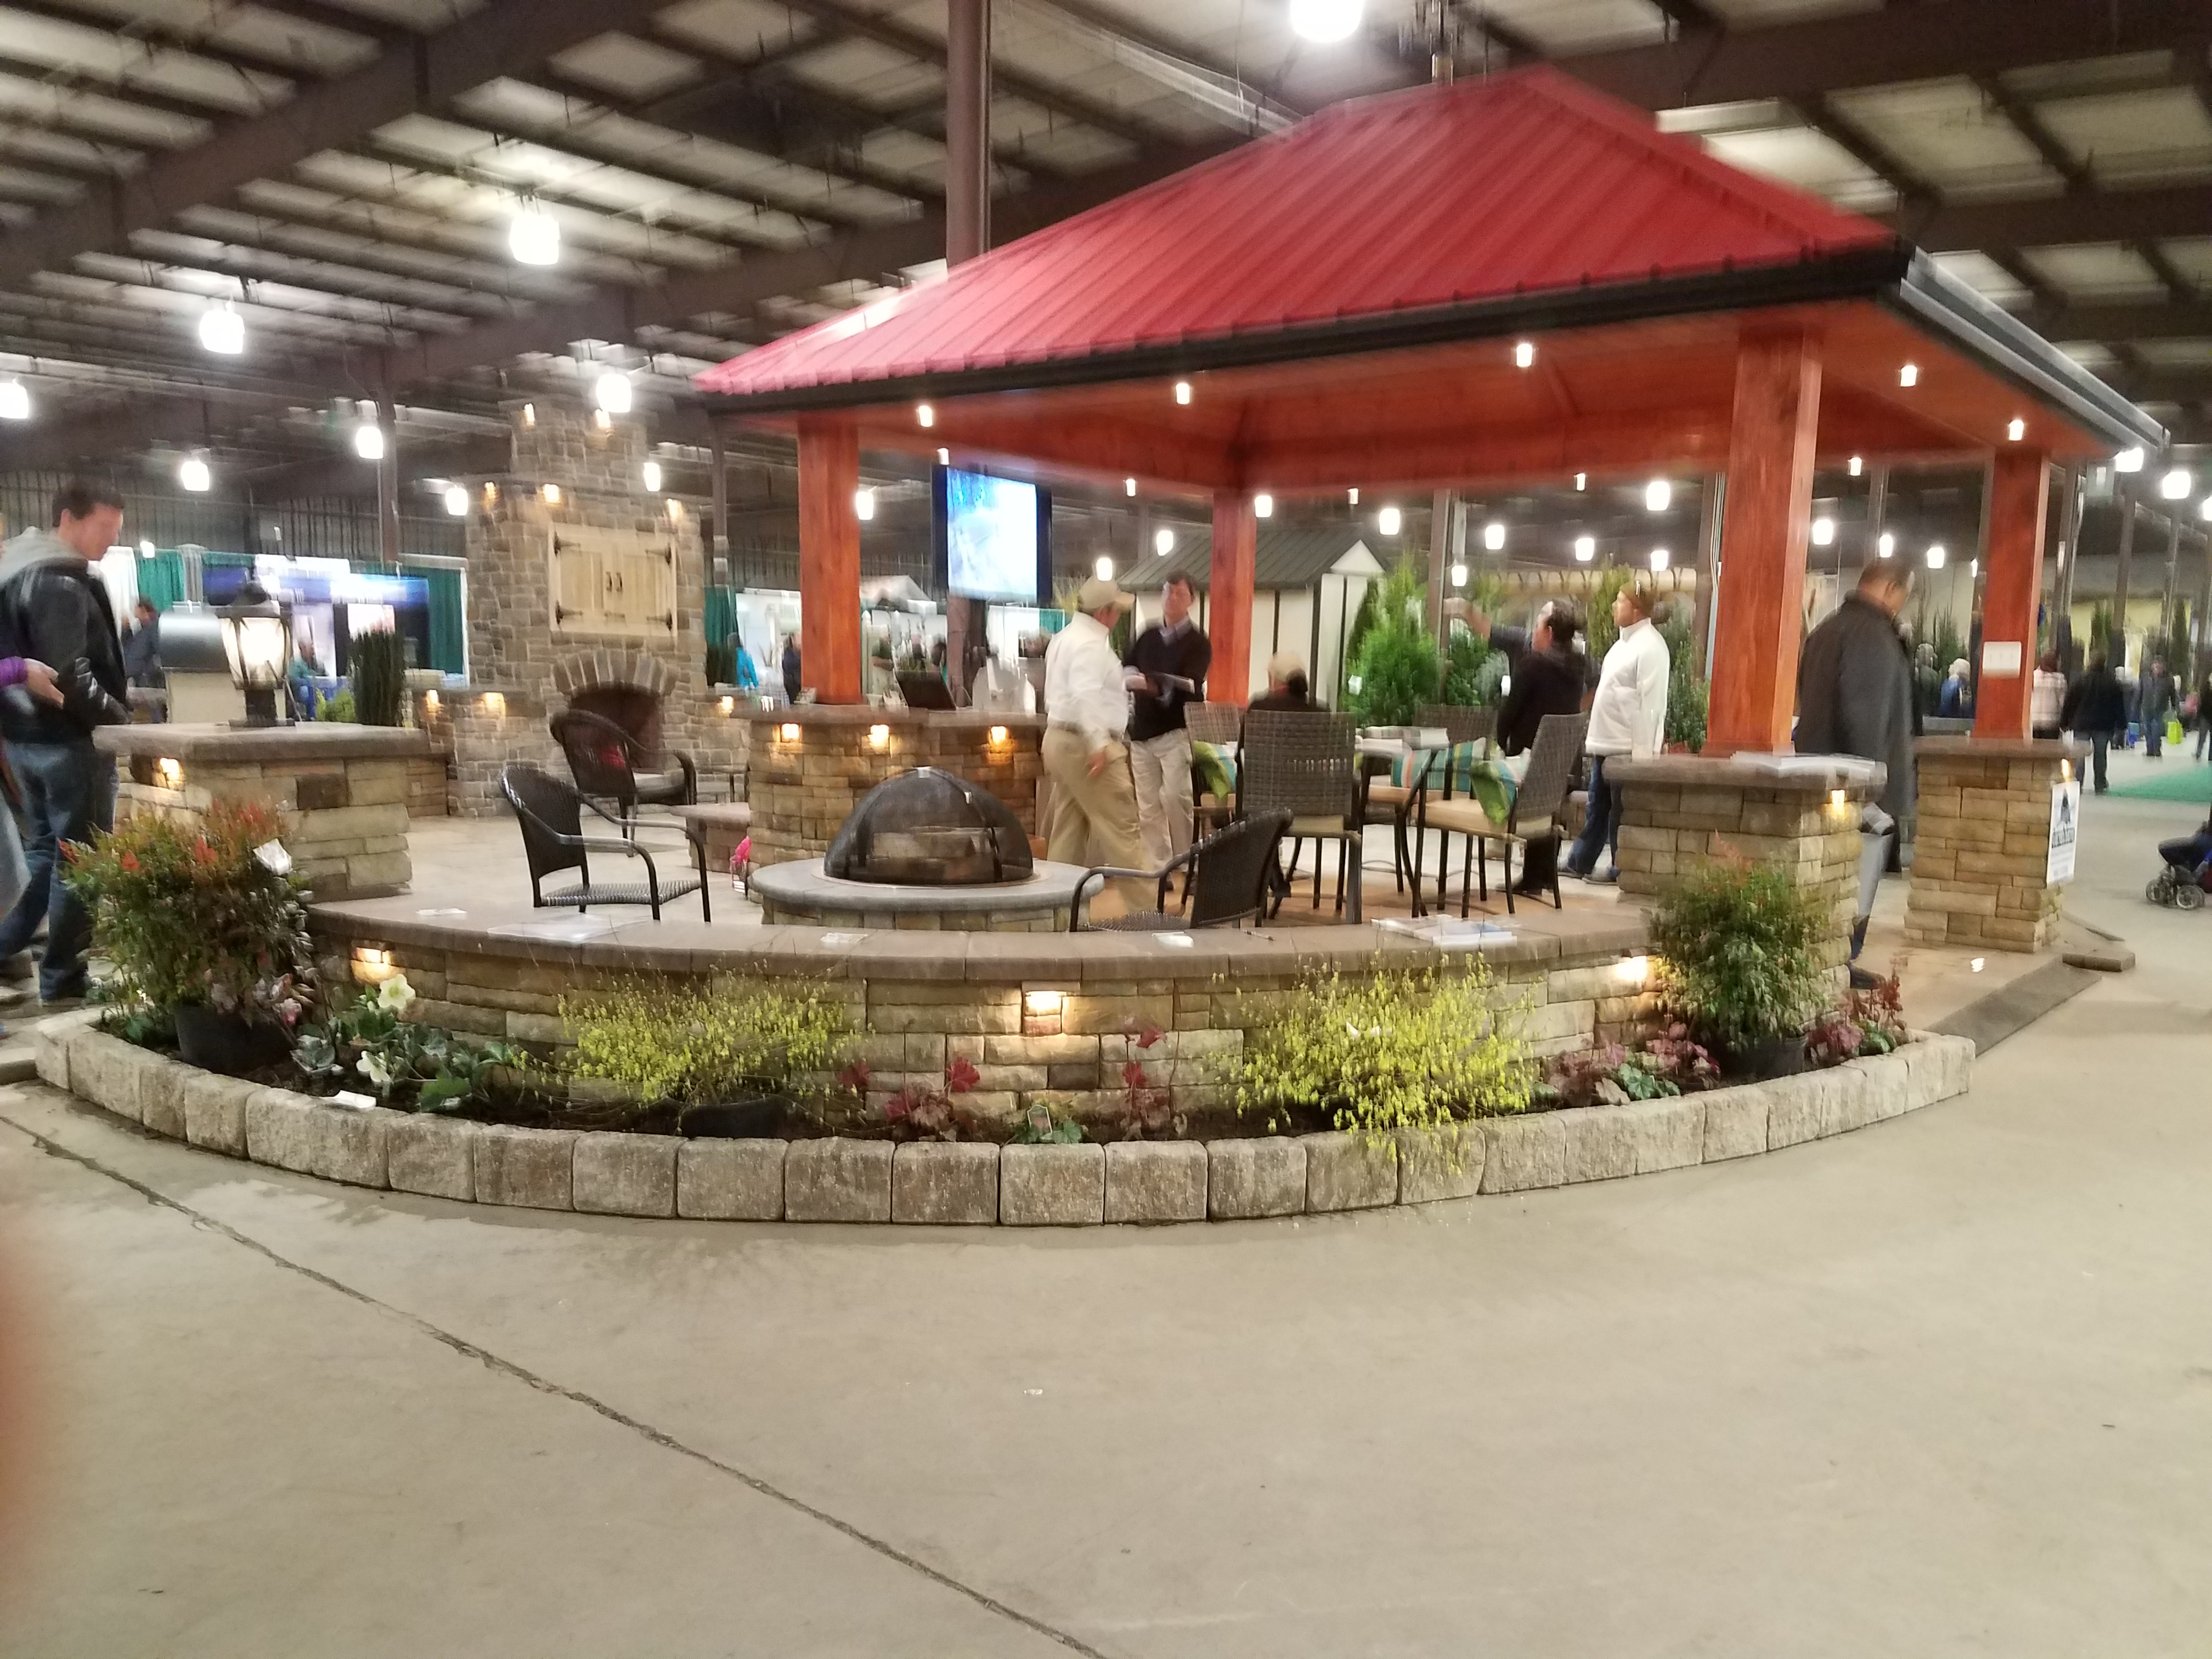 Spring Maryland Home And Garden Show In Baltimore Md Mar 3